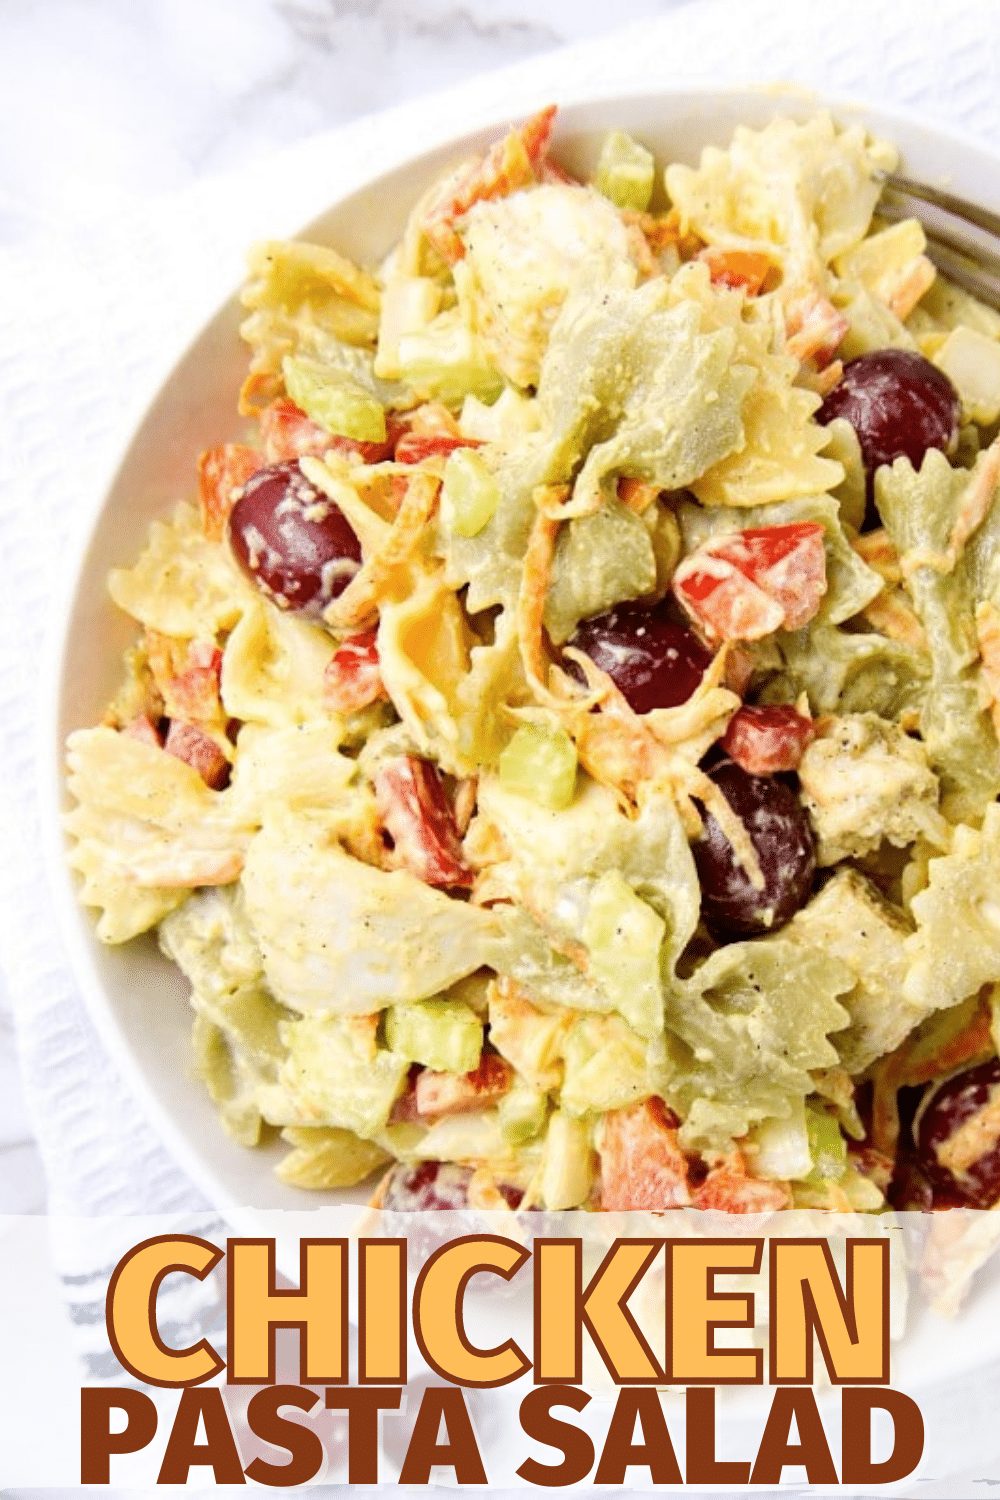 This is the absolute BEST chicken pasta salad. Great texture, flavor, colors, and it gets better the longer it sits! #pastasalad #chicken #salad via @wondermomwannab